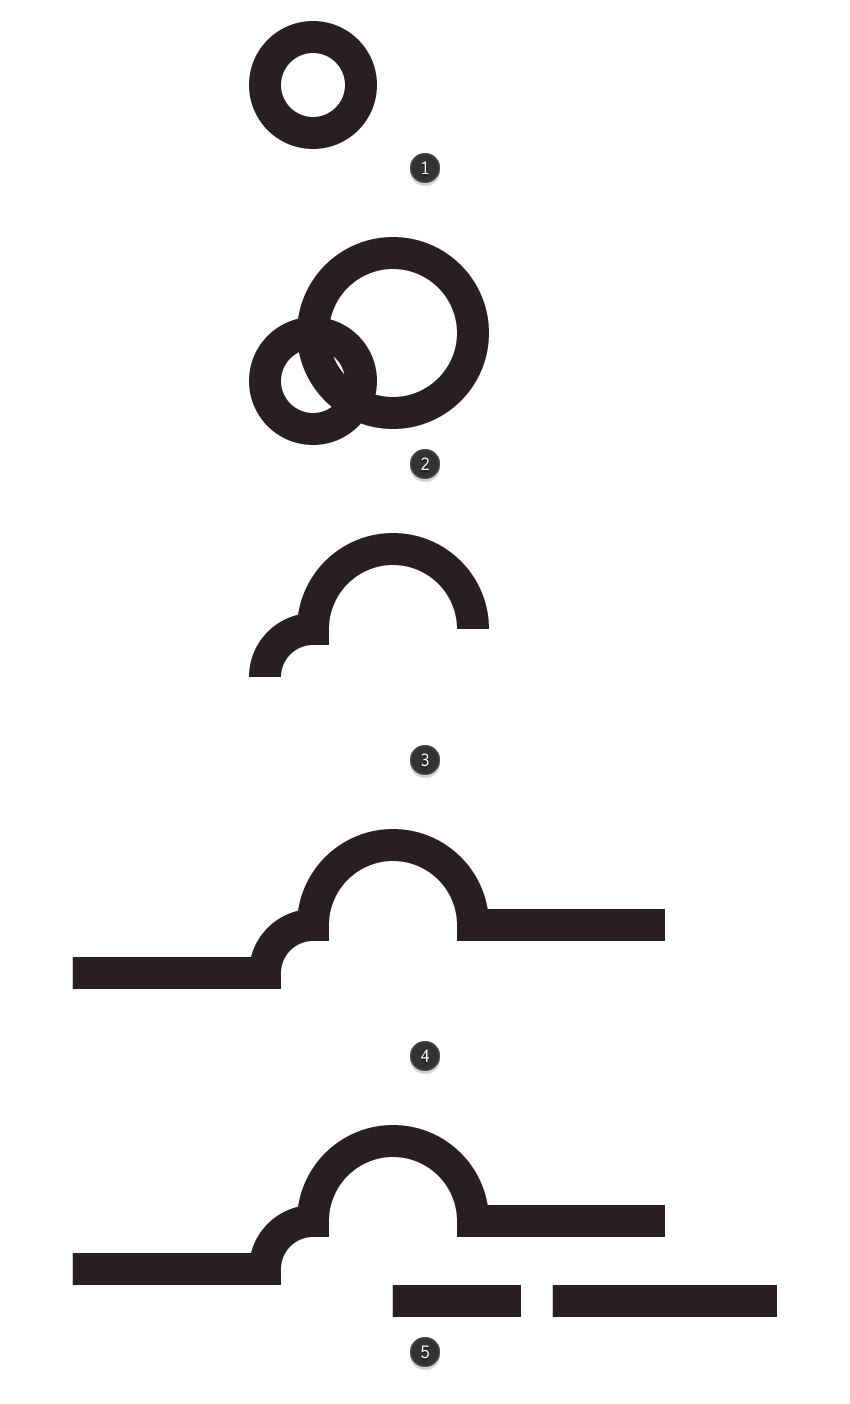 creating and positioning the main shapes for the clouds